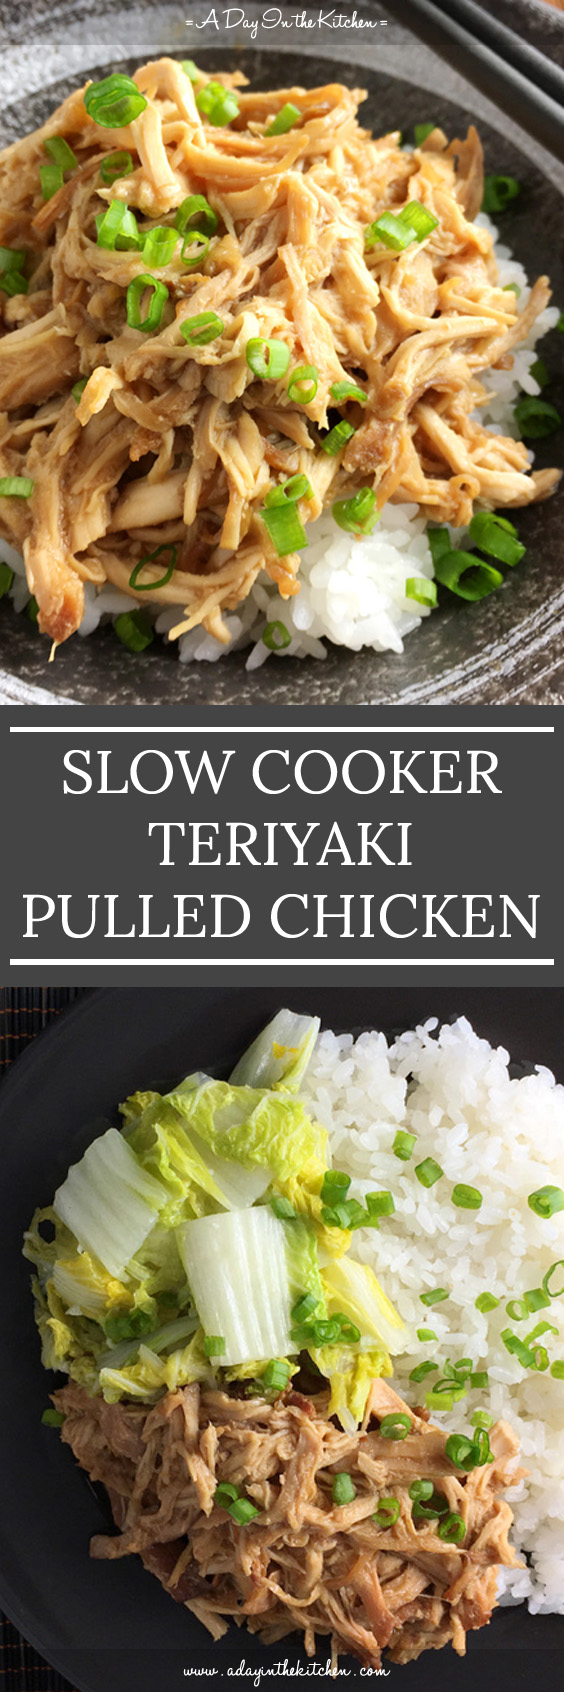 This tasty Slow Cooker Teriyaki Pulled Chicken is perfect for that weeknight meal when you're short on time to prepare dinner. Let the slow cooker do the cooking for you!